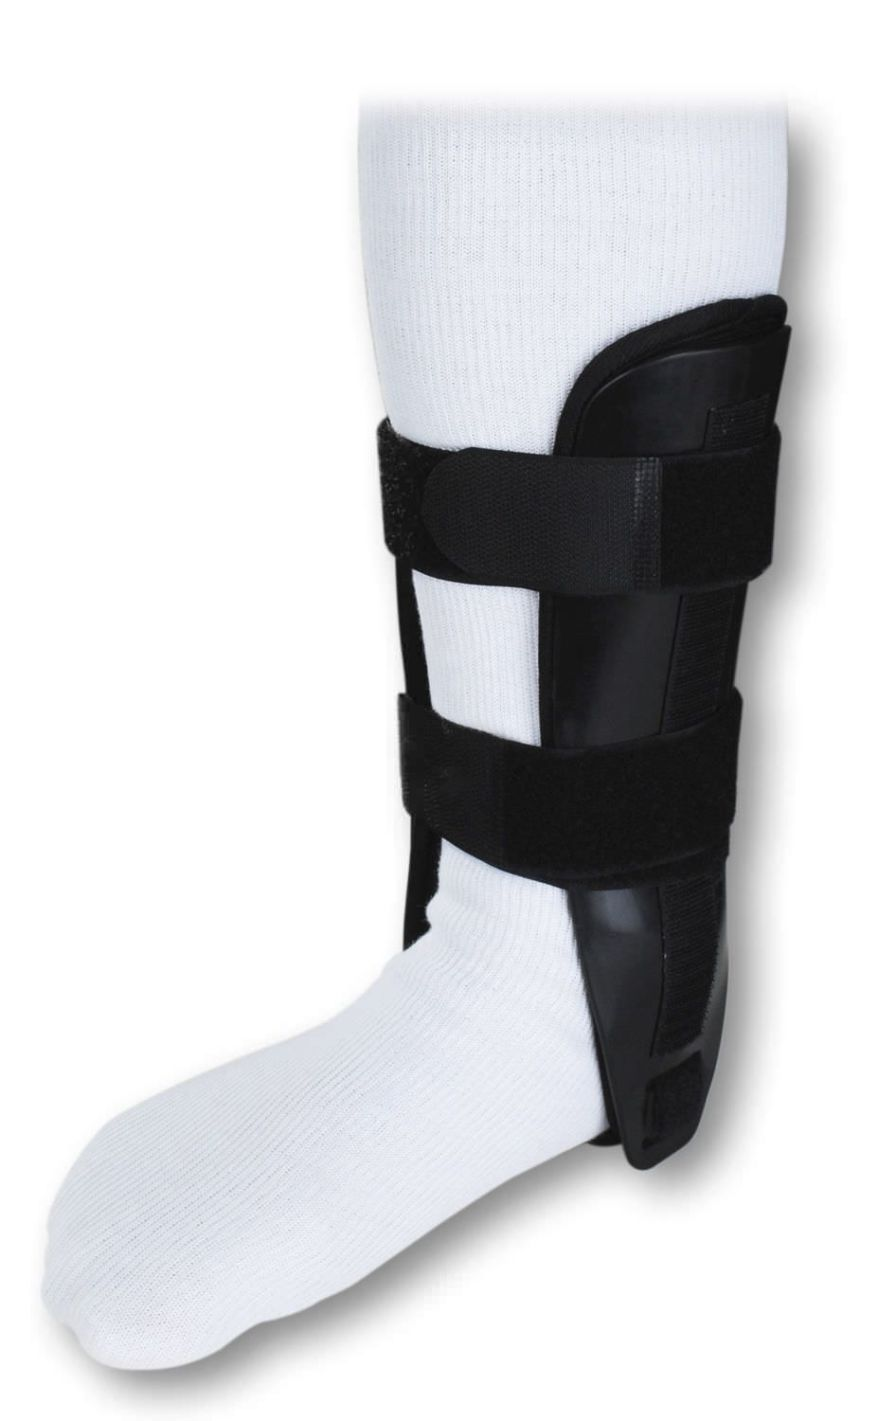 Ankle splint (orthopedic immobilization) Optec USA